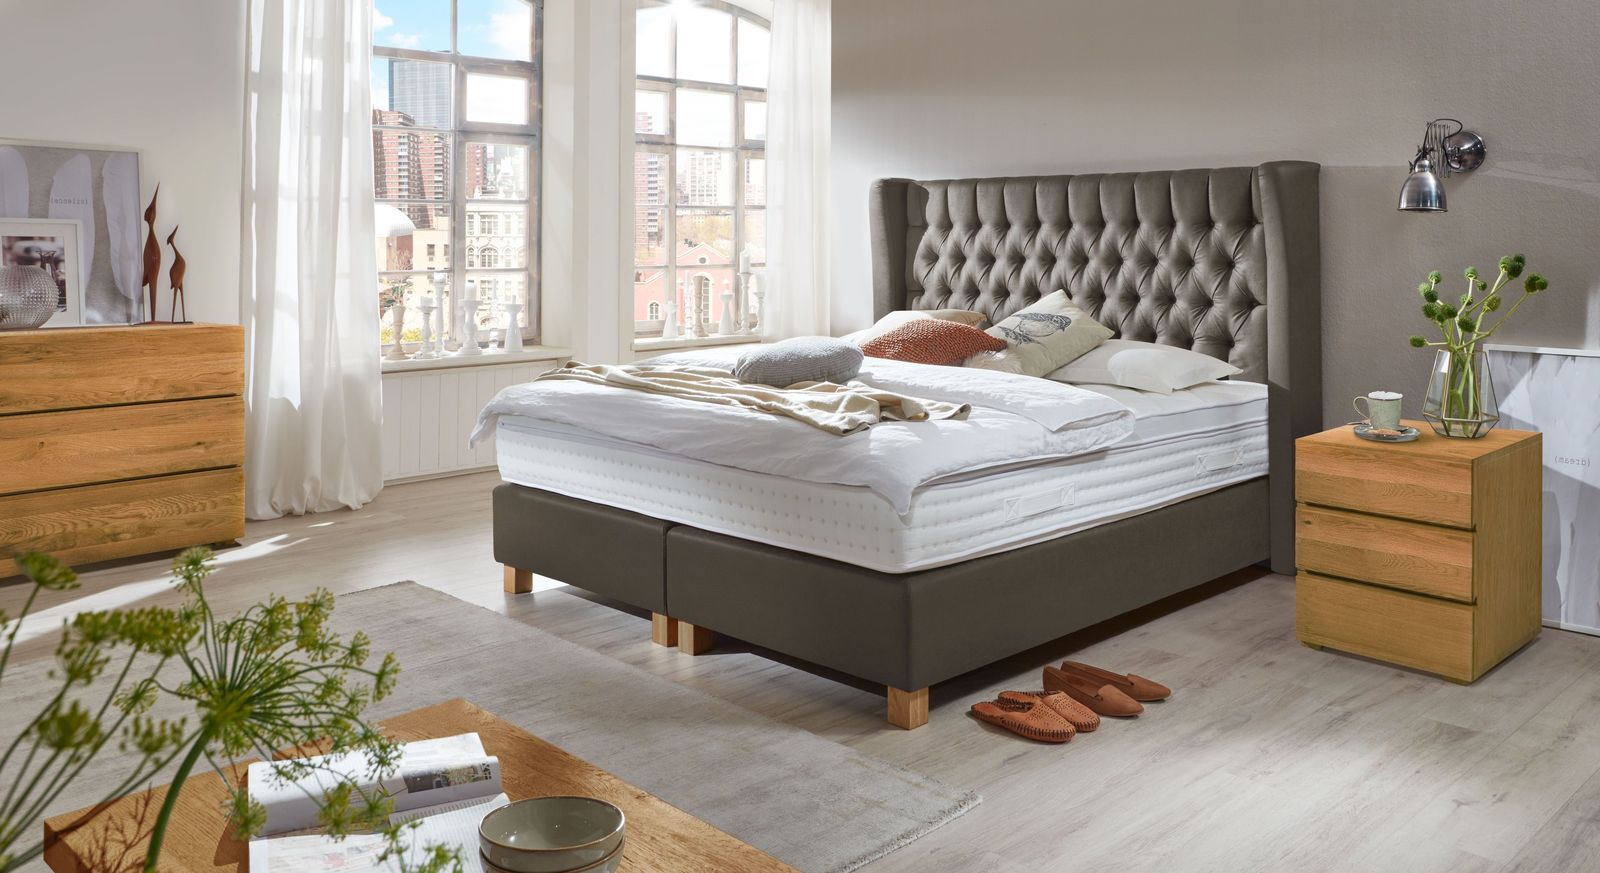 Luxus-Boxspringbett McAllen mit Chesterfield-Steppung